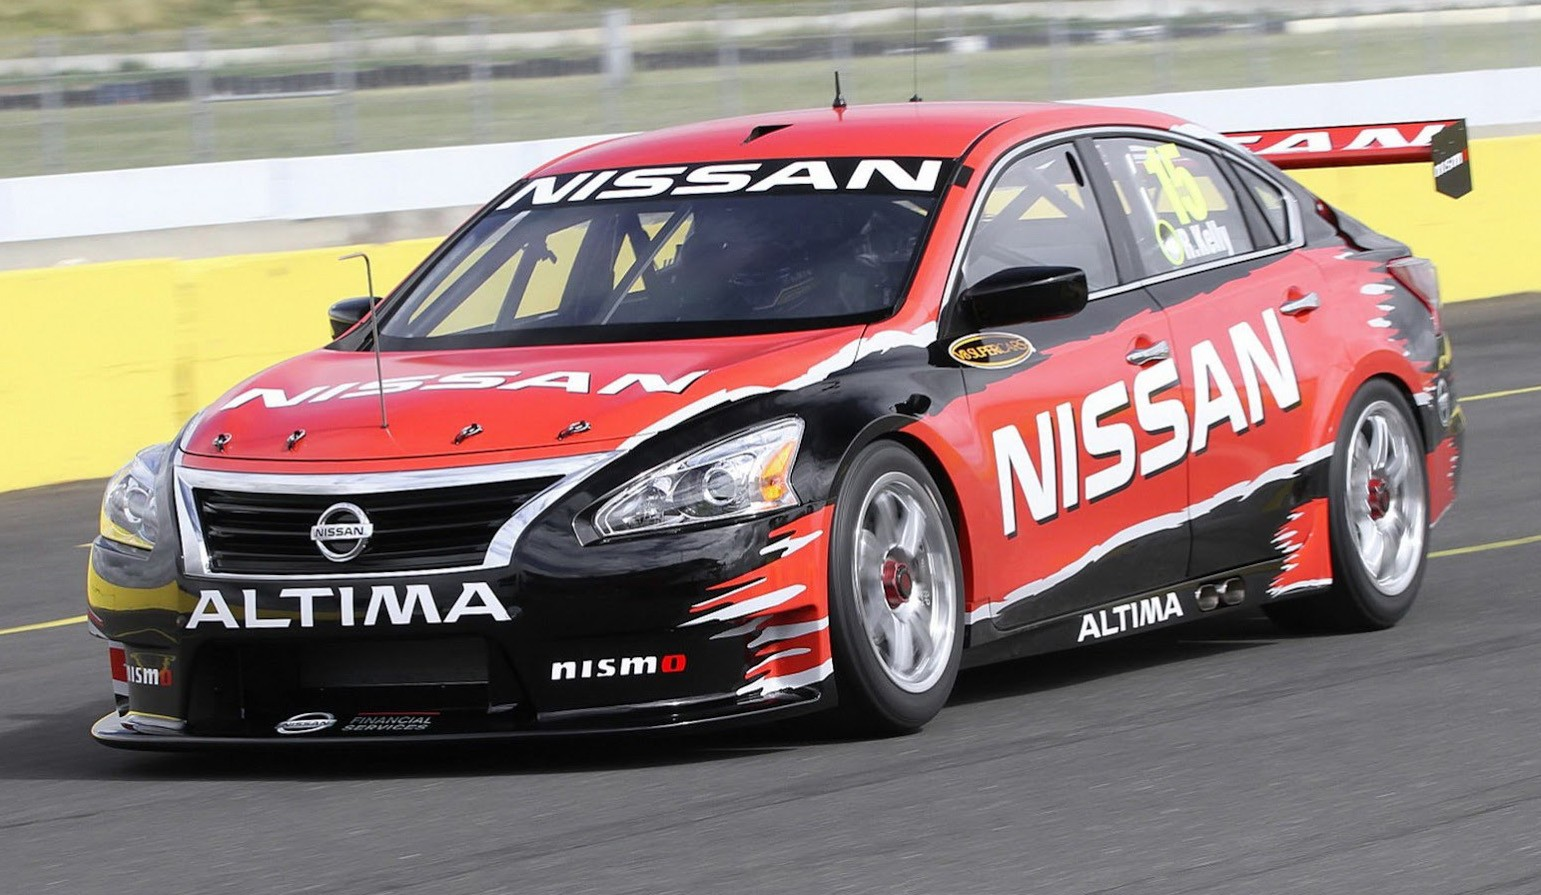 Nissan were the first new manufacturer to enter V8 Supercars